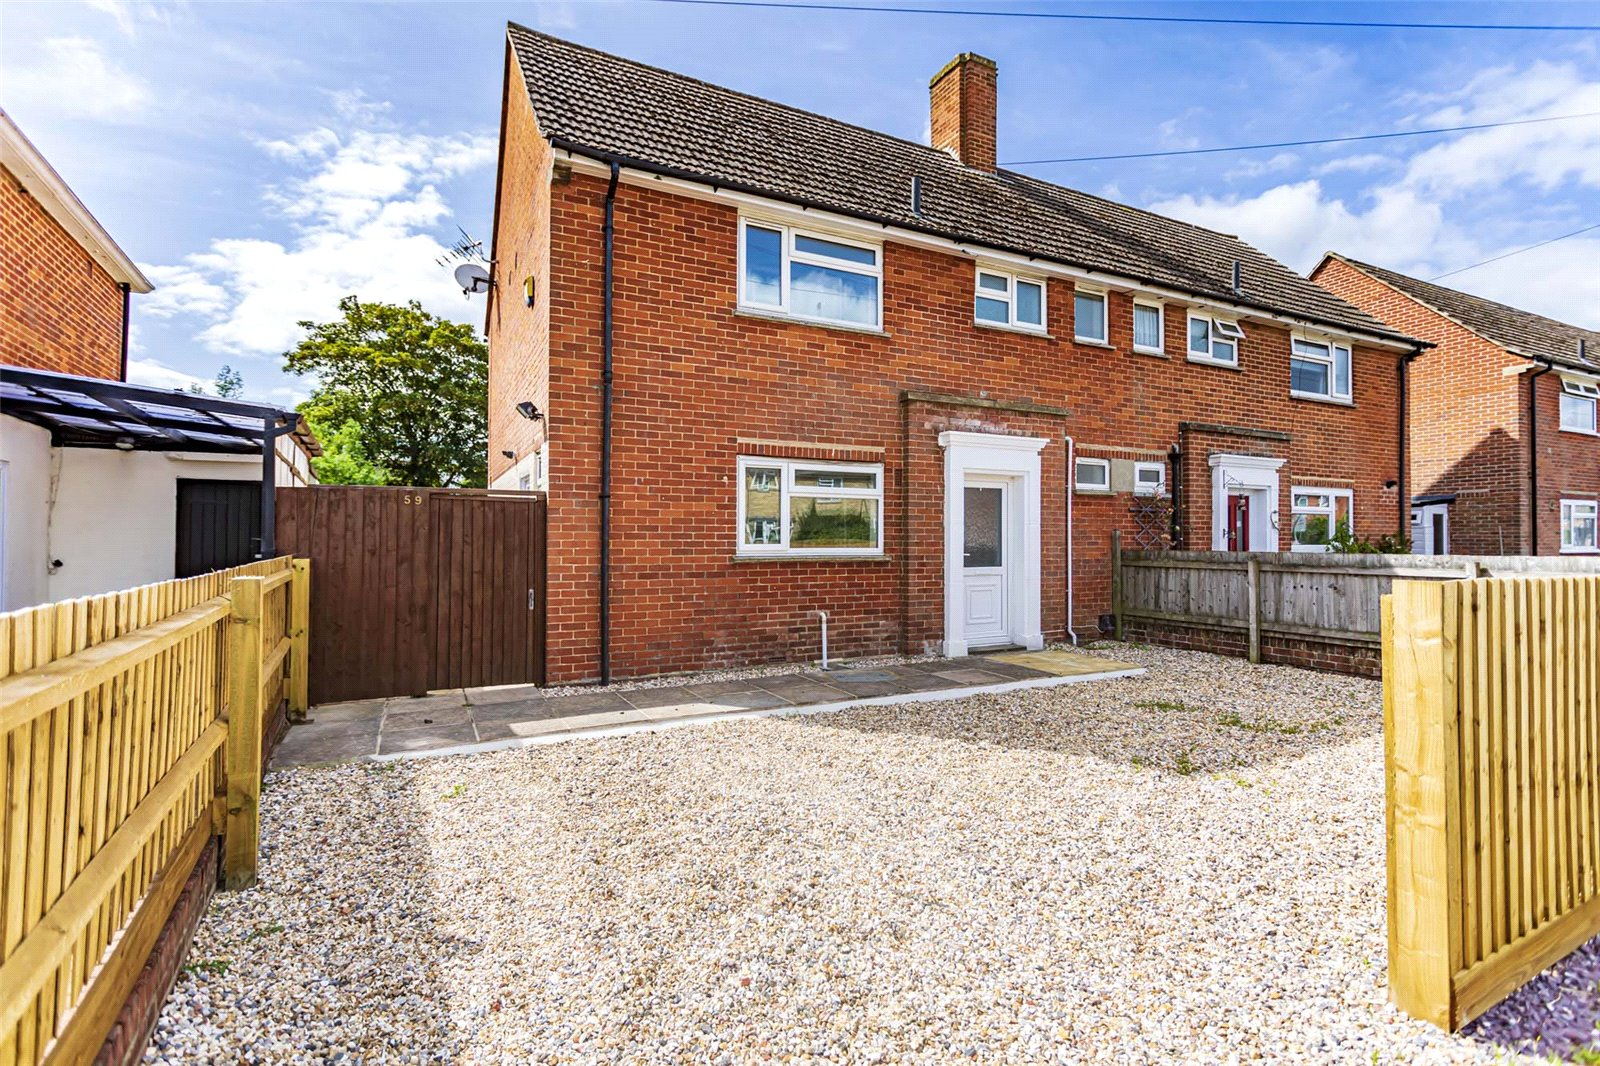 3 bed house for sale in Amethyst Road, Christchurch, BH23